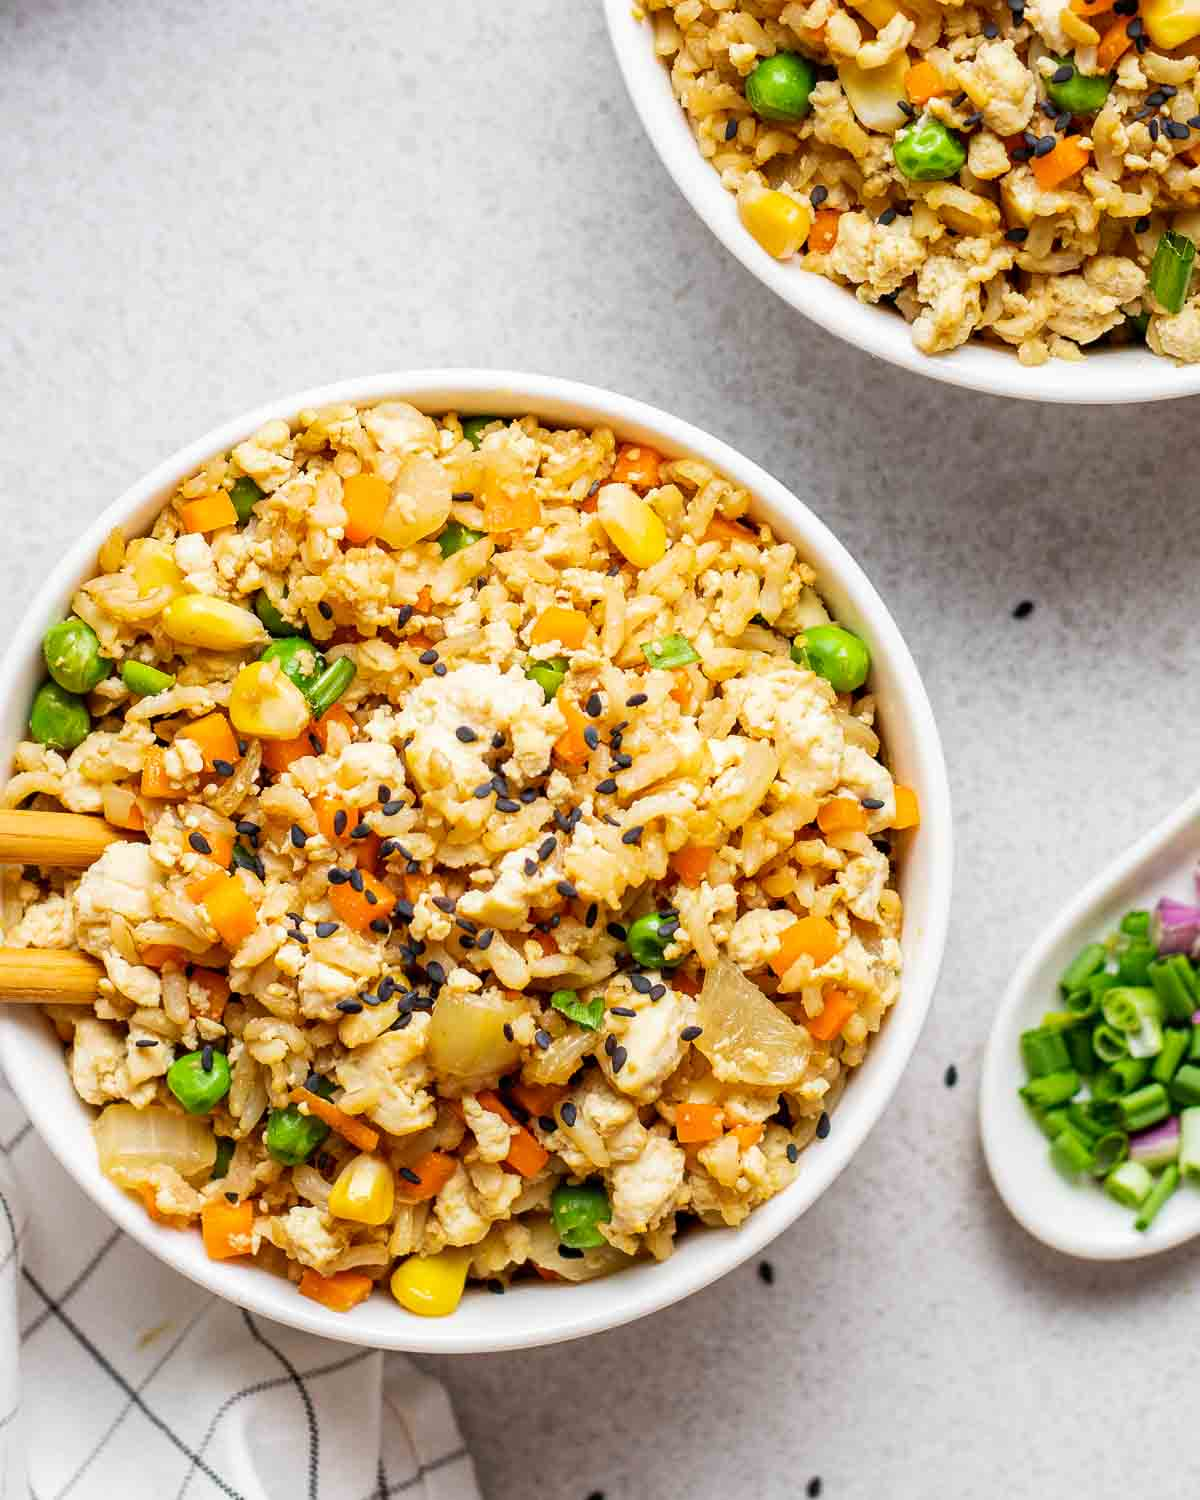 Fried rice in a bowl with chopsticks. There is another bowl of fried rice and chopped scallions in the background.